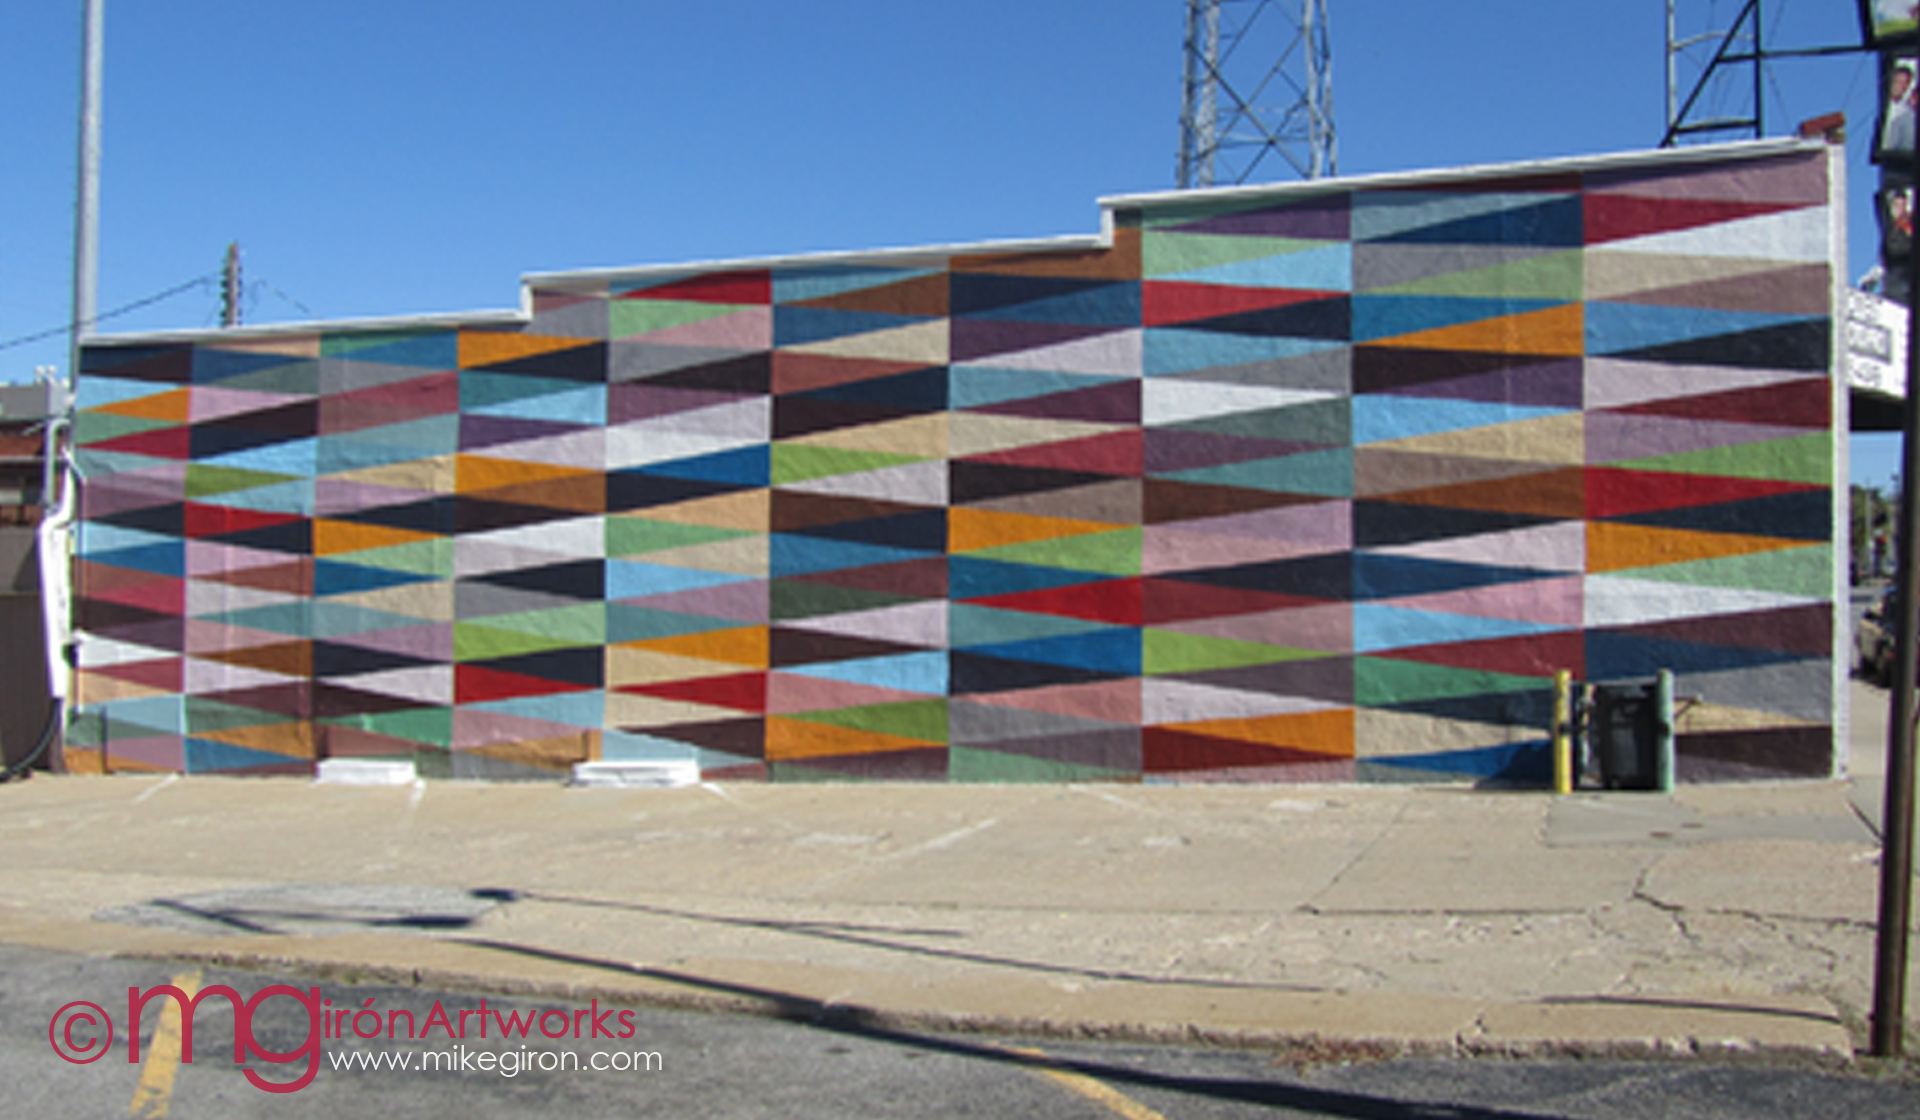 the Triangulation mural